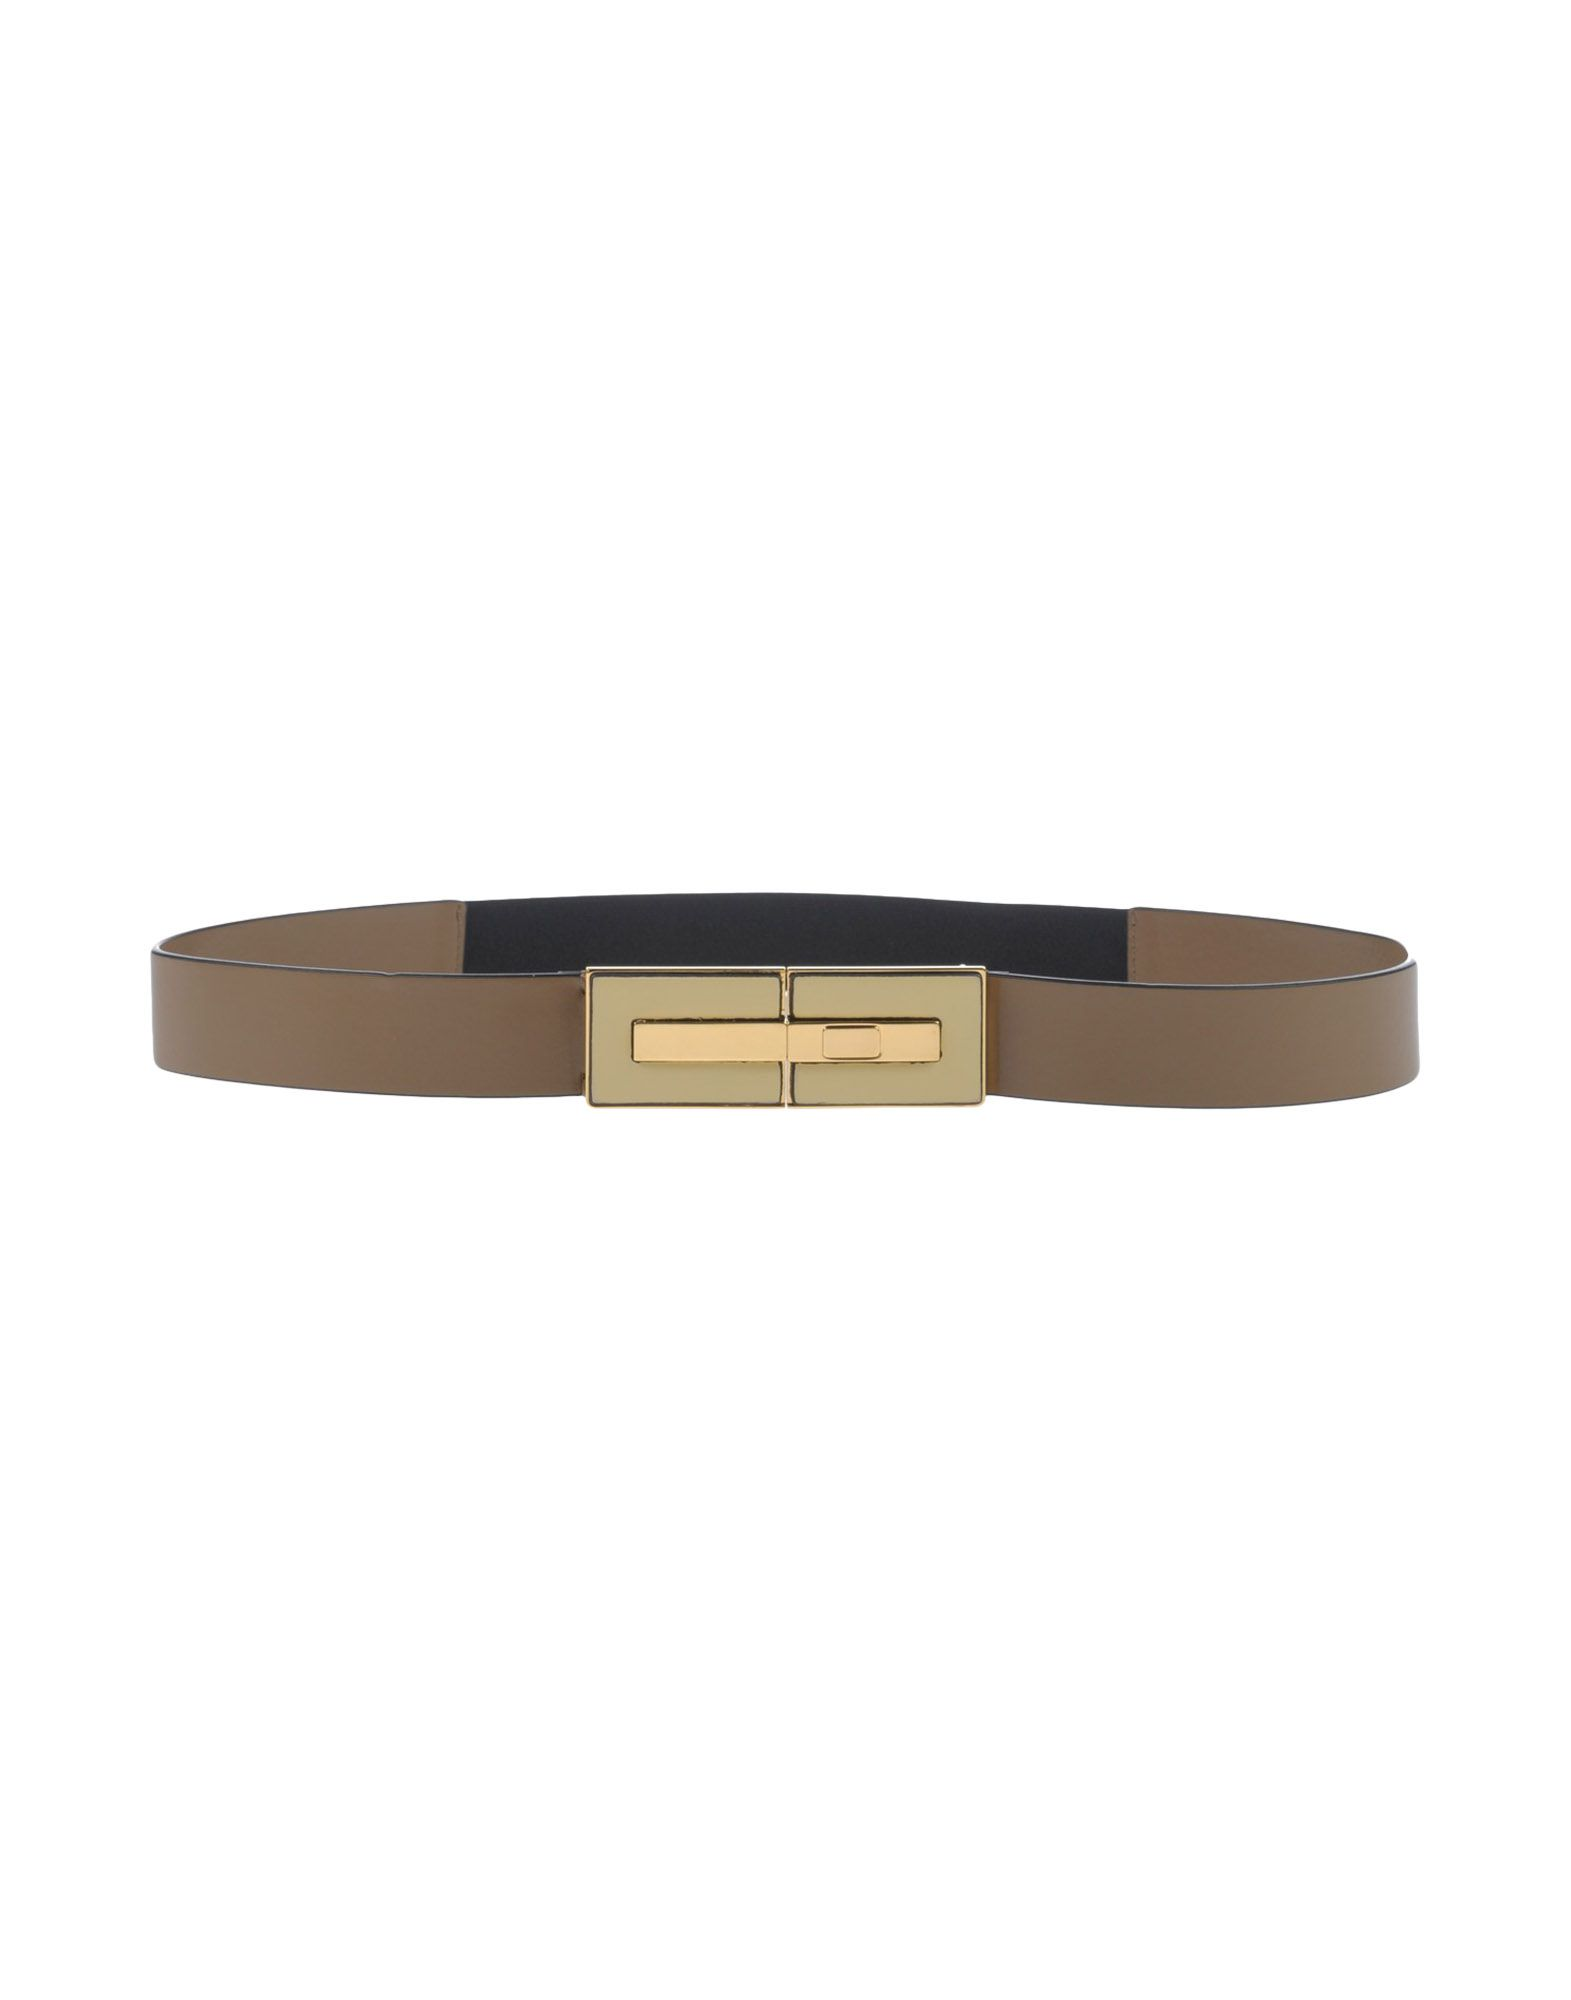 Small Leather Goods - Belts Pelletteria Forino wWhXejfUFu